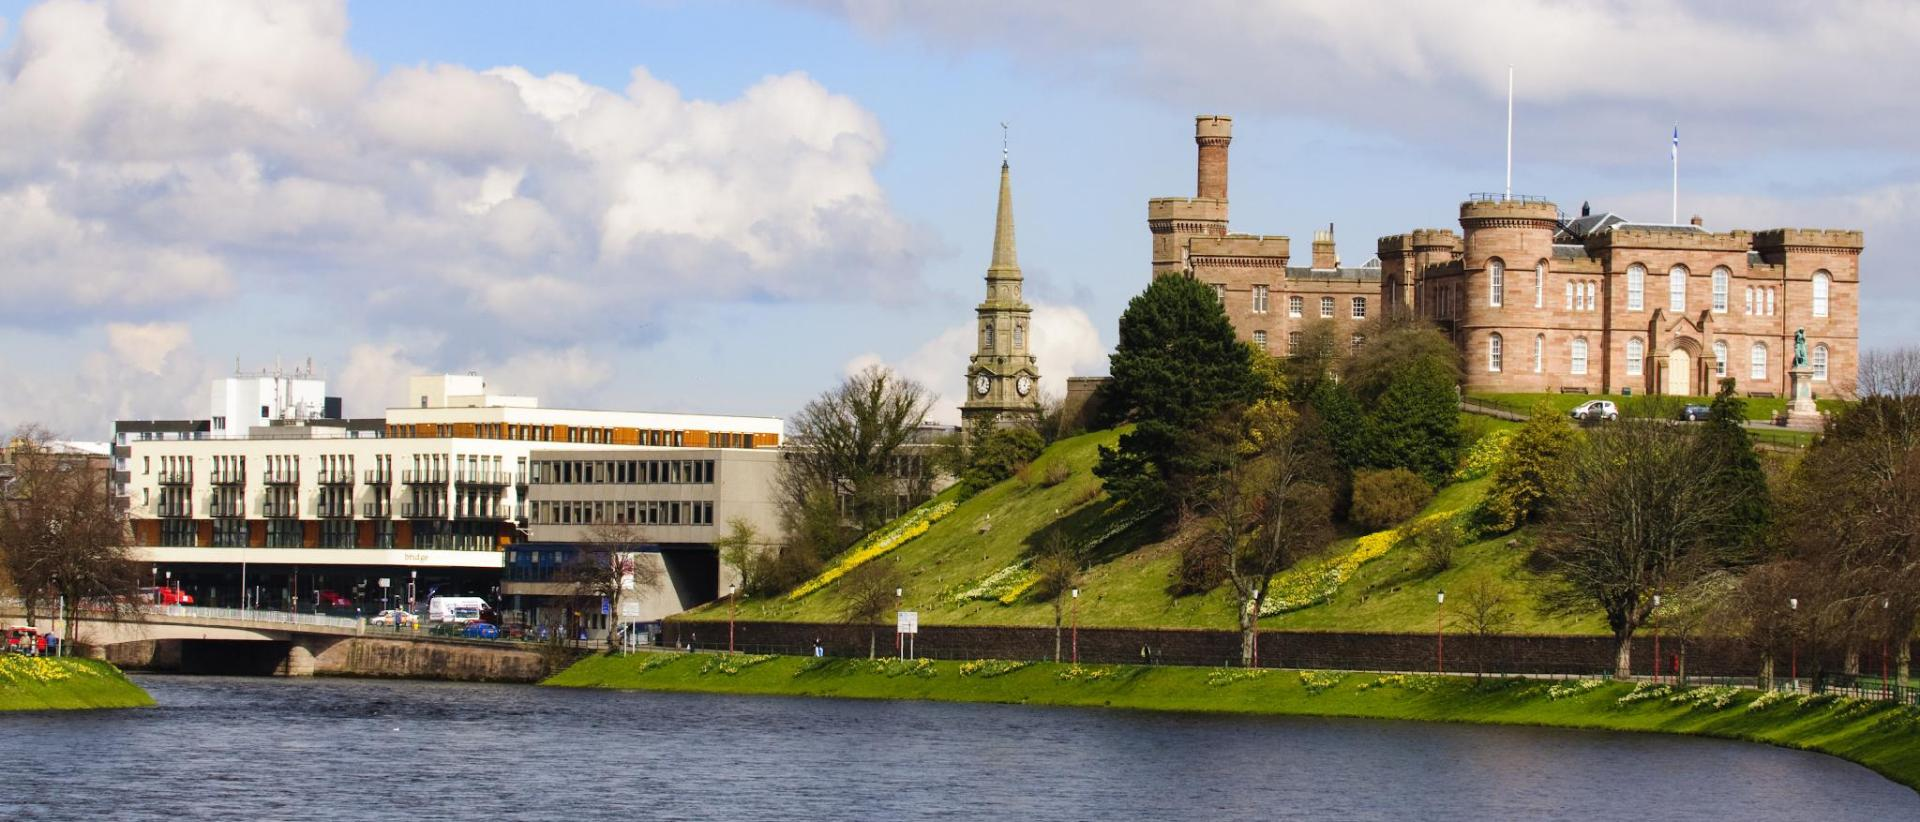 Dalneigh Map And Hotels In Dalneigh Area Inverness